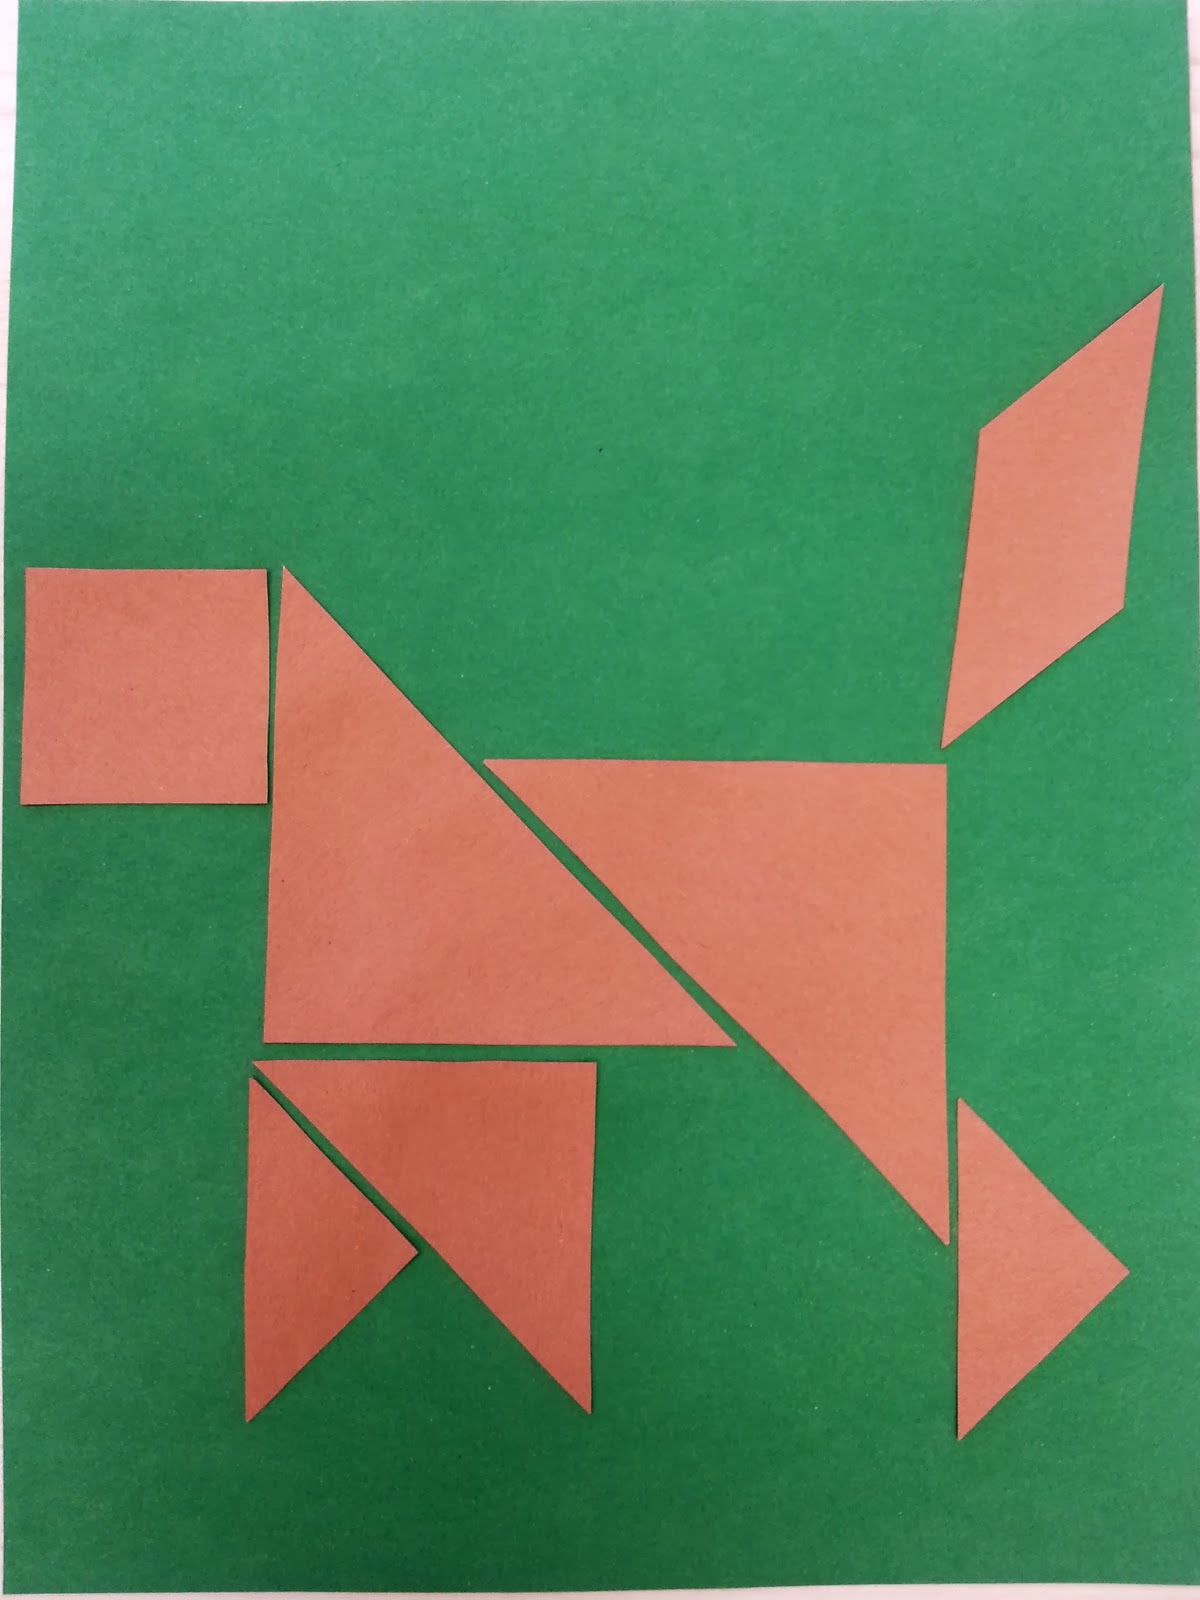 chinese new year crafts for kids | Tangram | Pinterest